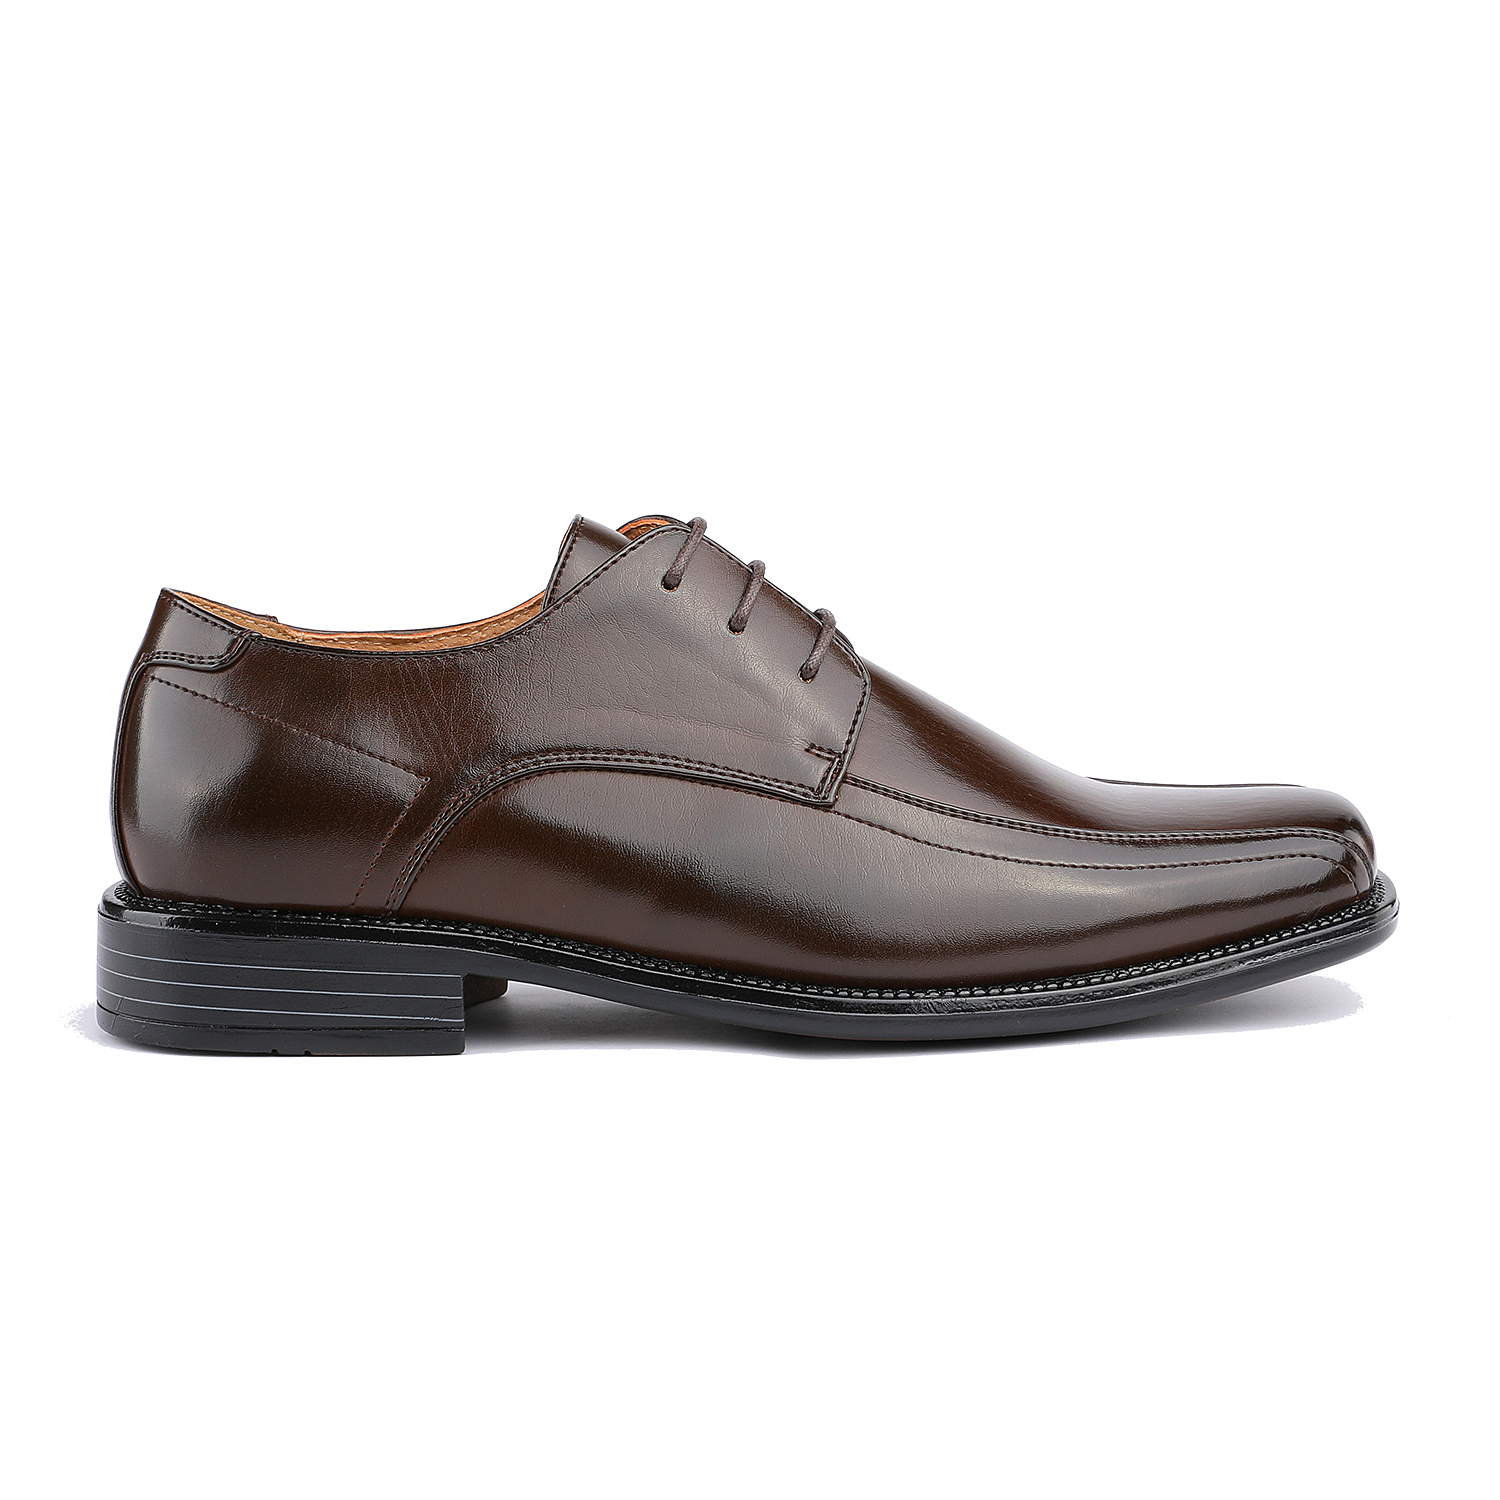 BRUNO-MARC-Men-STATE-Formal-Square-Toe-Leather-Lined-Slip-On-Dress-Loafers-Shoes thumbnail 31